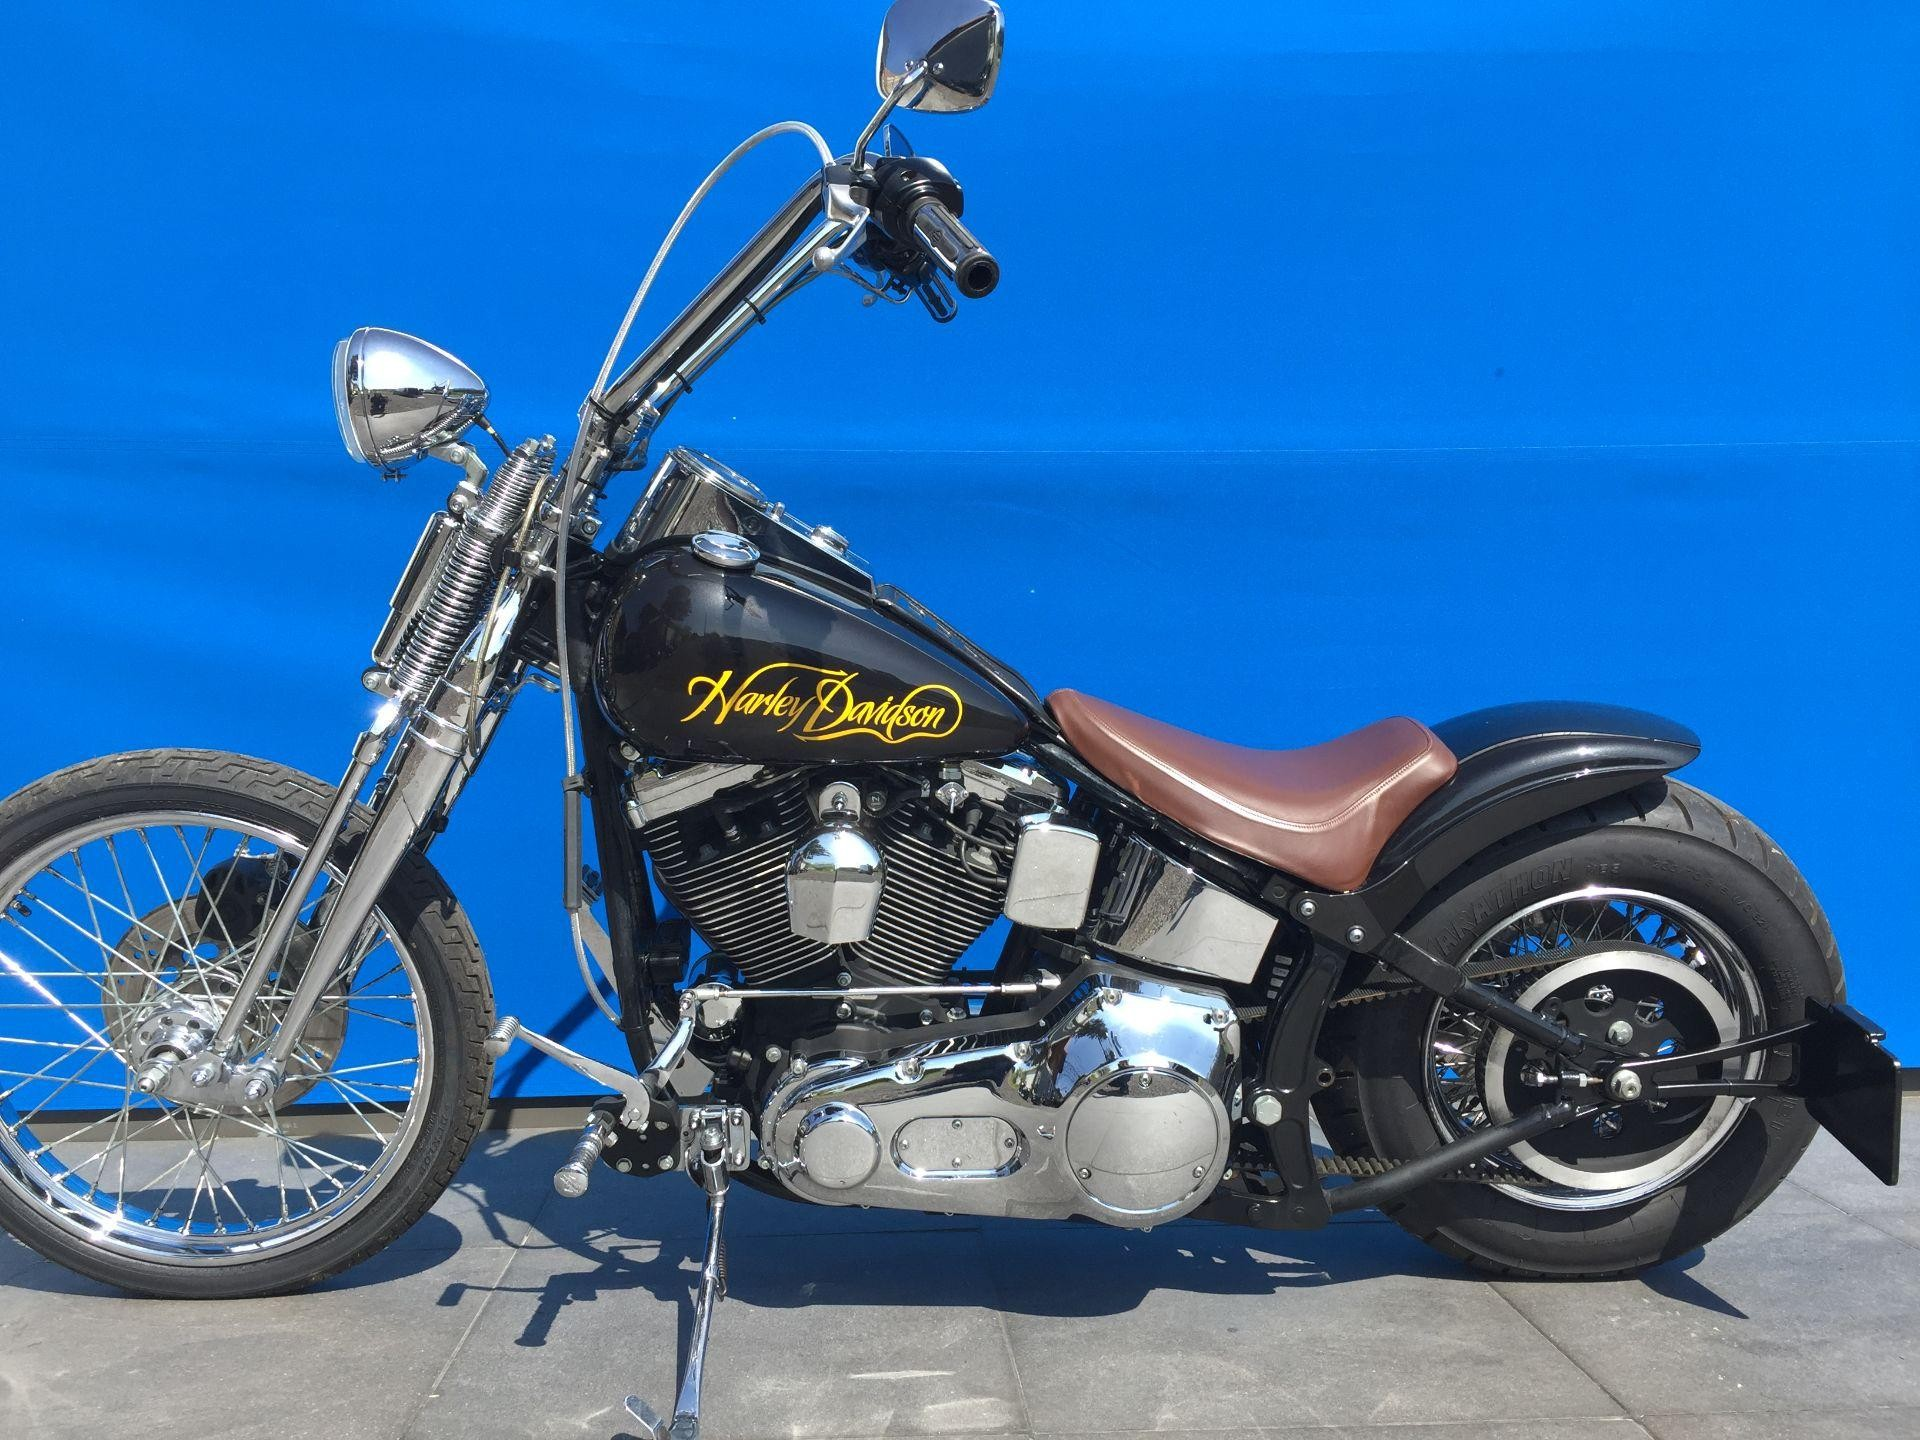 1965 springer harley pictures 1965 foot clutch lever The Panhead